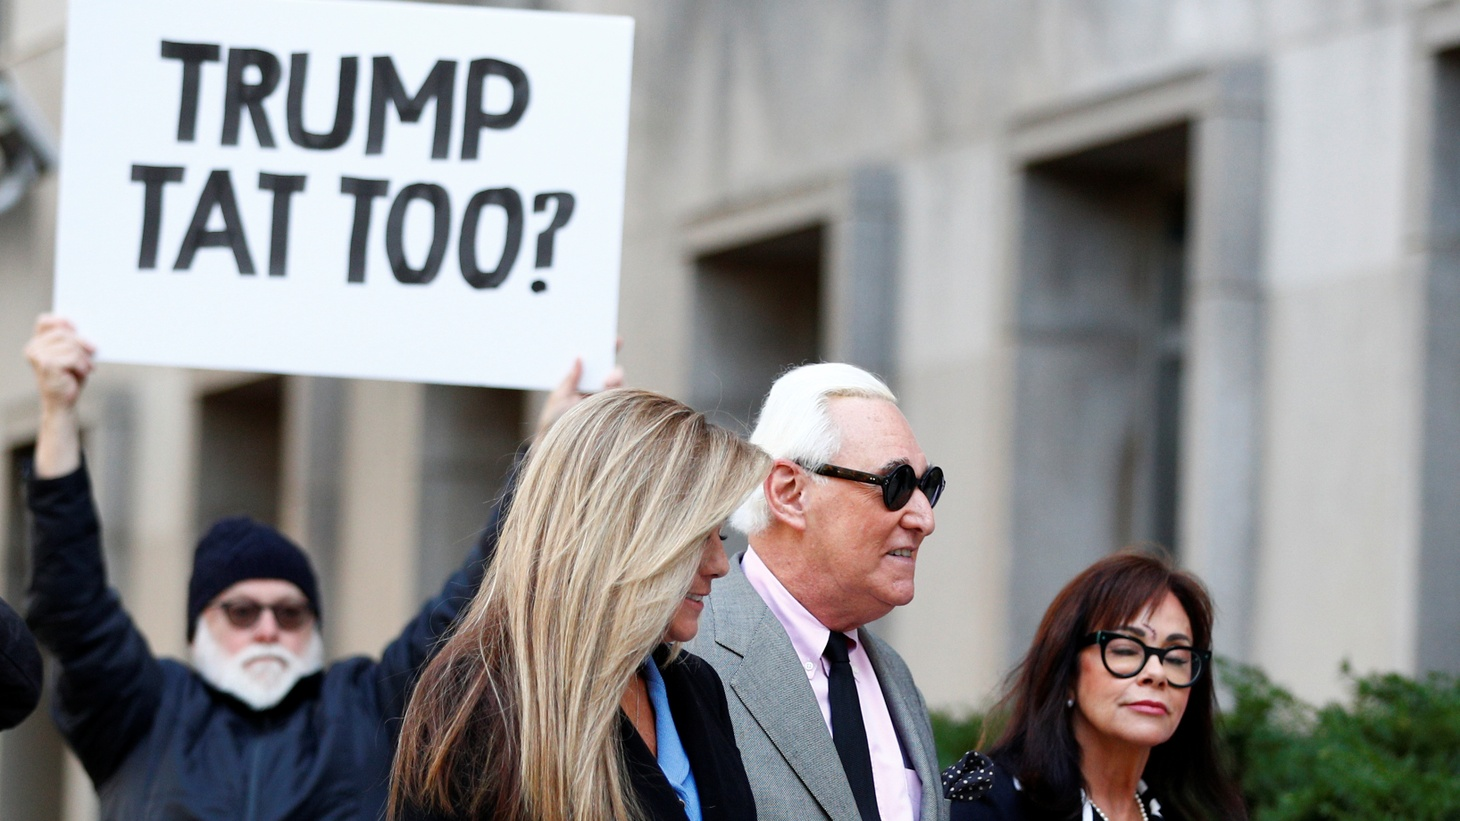 Roger Stone, former campaign adviser to U.S. President Donald Trump, arrives for the start of his criminal trial on charges of lying to Congress, obstructing justice and witness tampering at U.S. District Court in Washington, U.S., November 5, 2019.